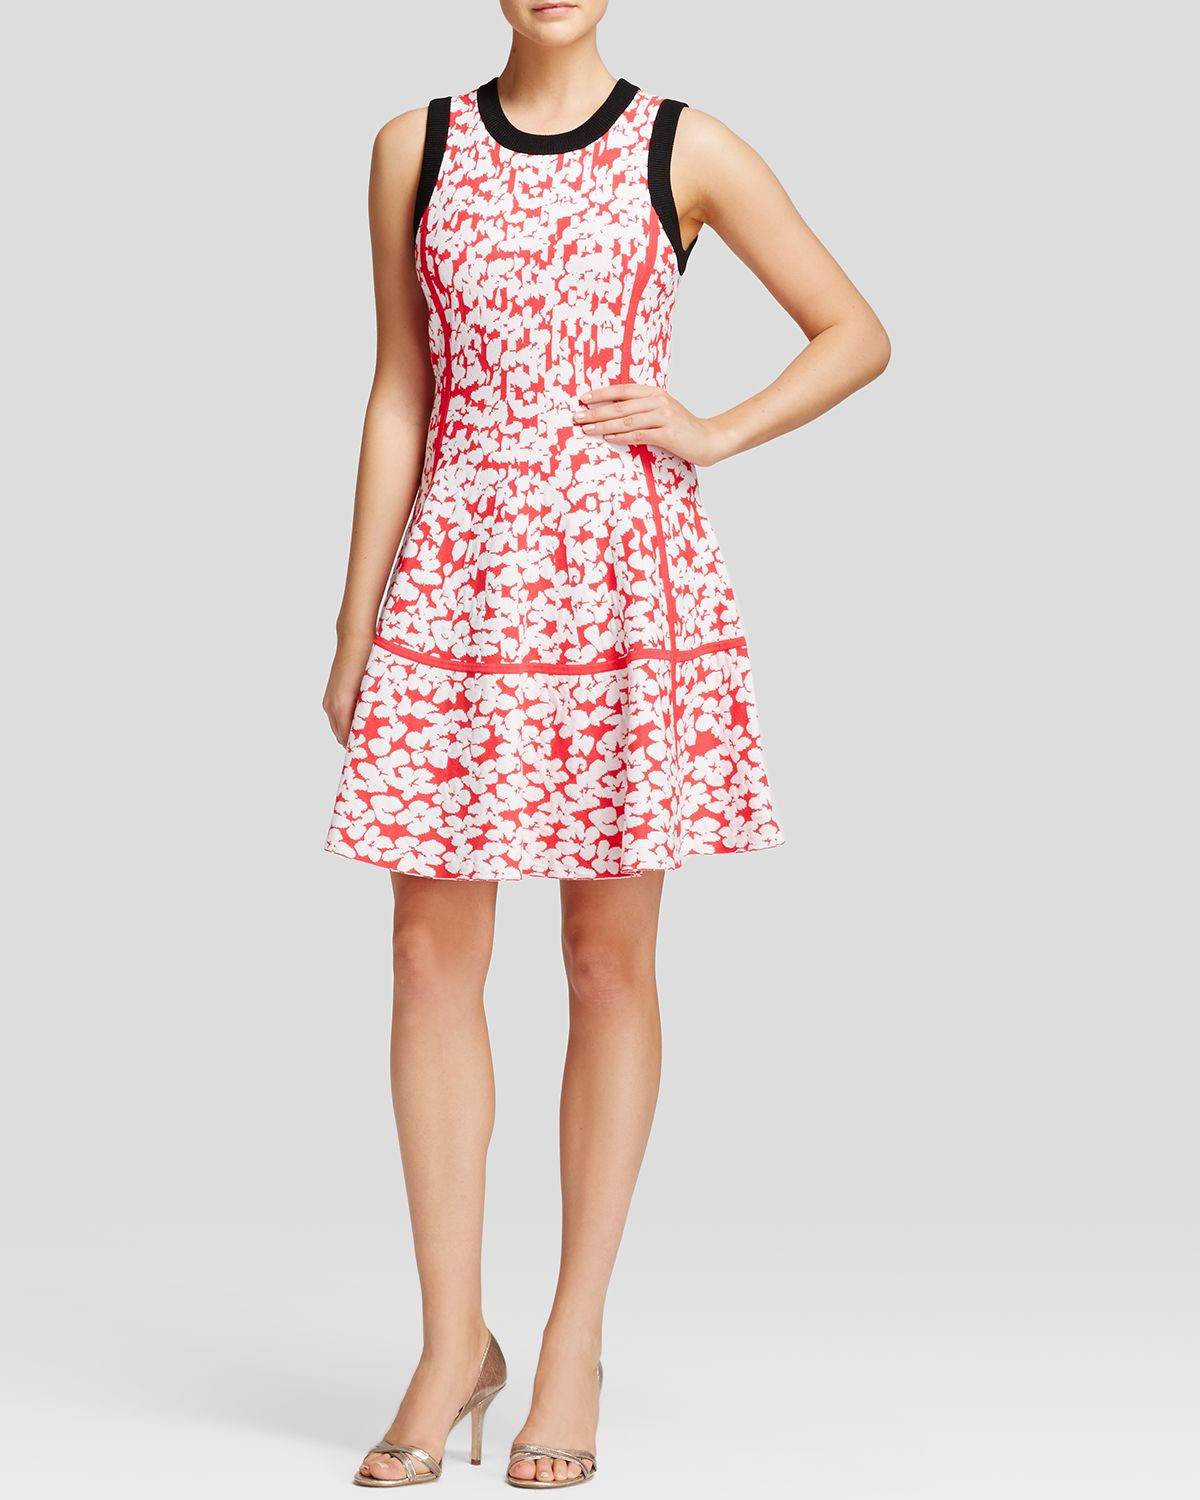 Lyst Kate Spade Floral Jacquard Dress In Black